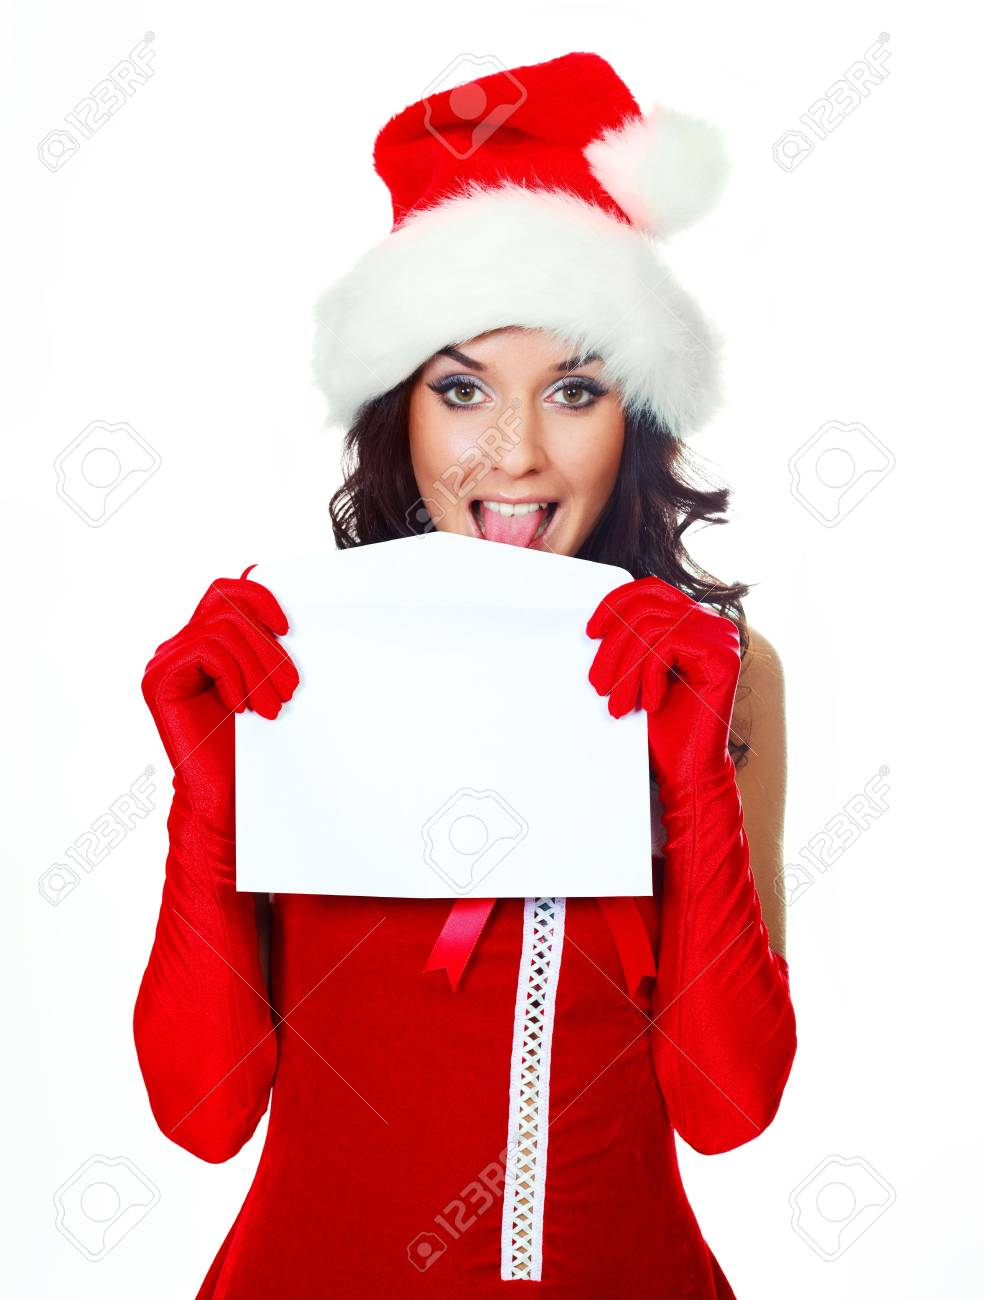 beautiful young brunette woman dressed as Santa licking an envelope to glue it Stock Photo - 5811640